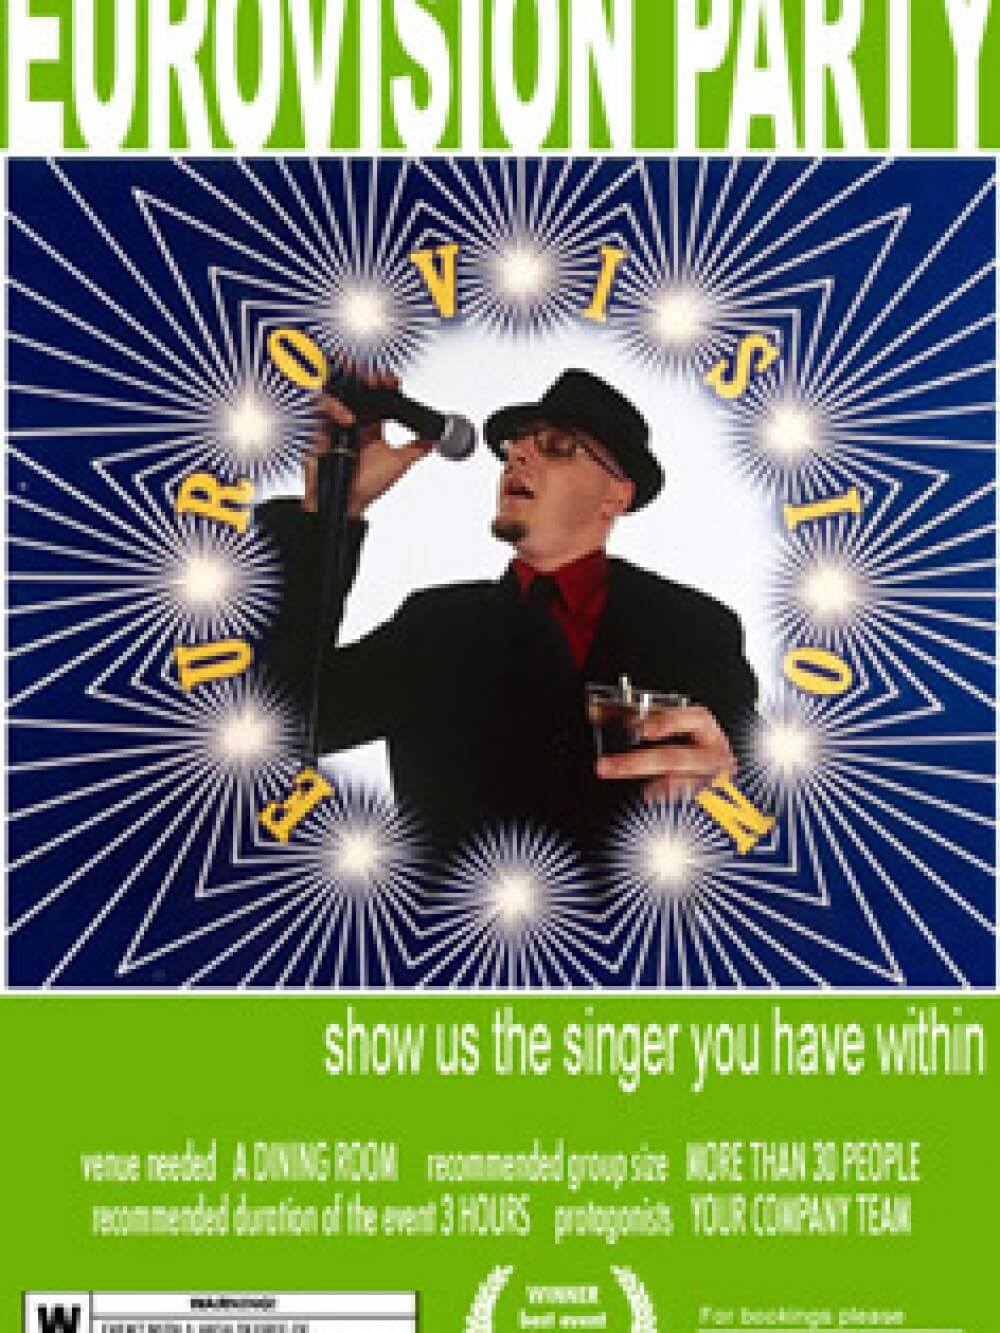 eurovision_party_vertical_web